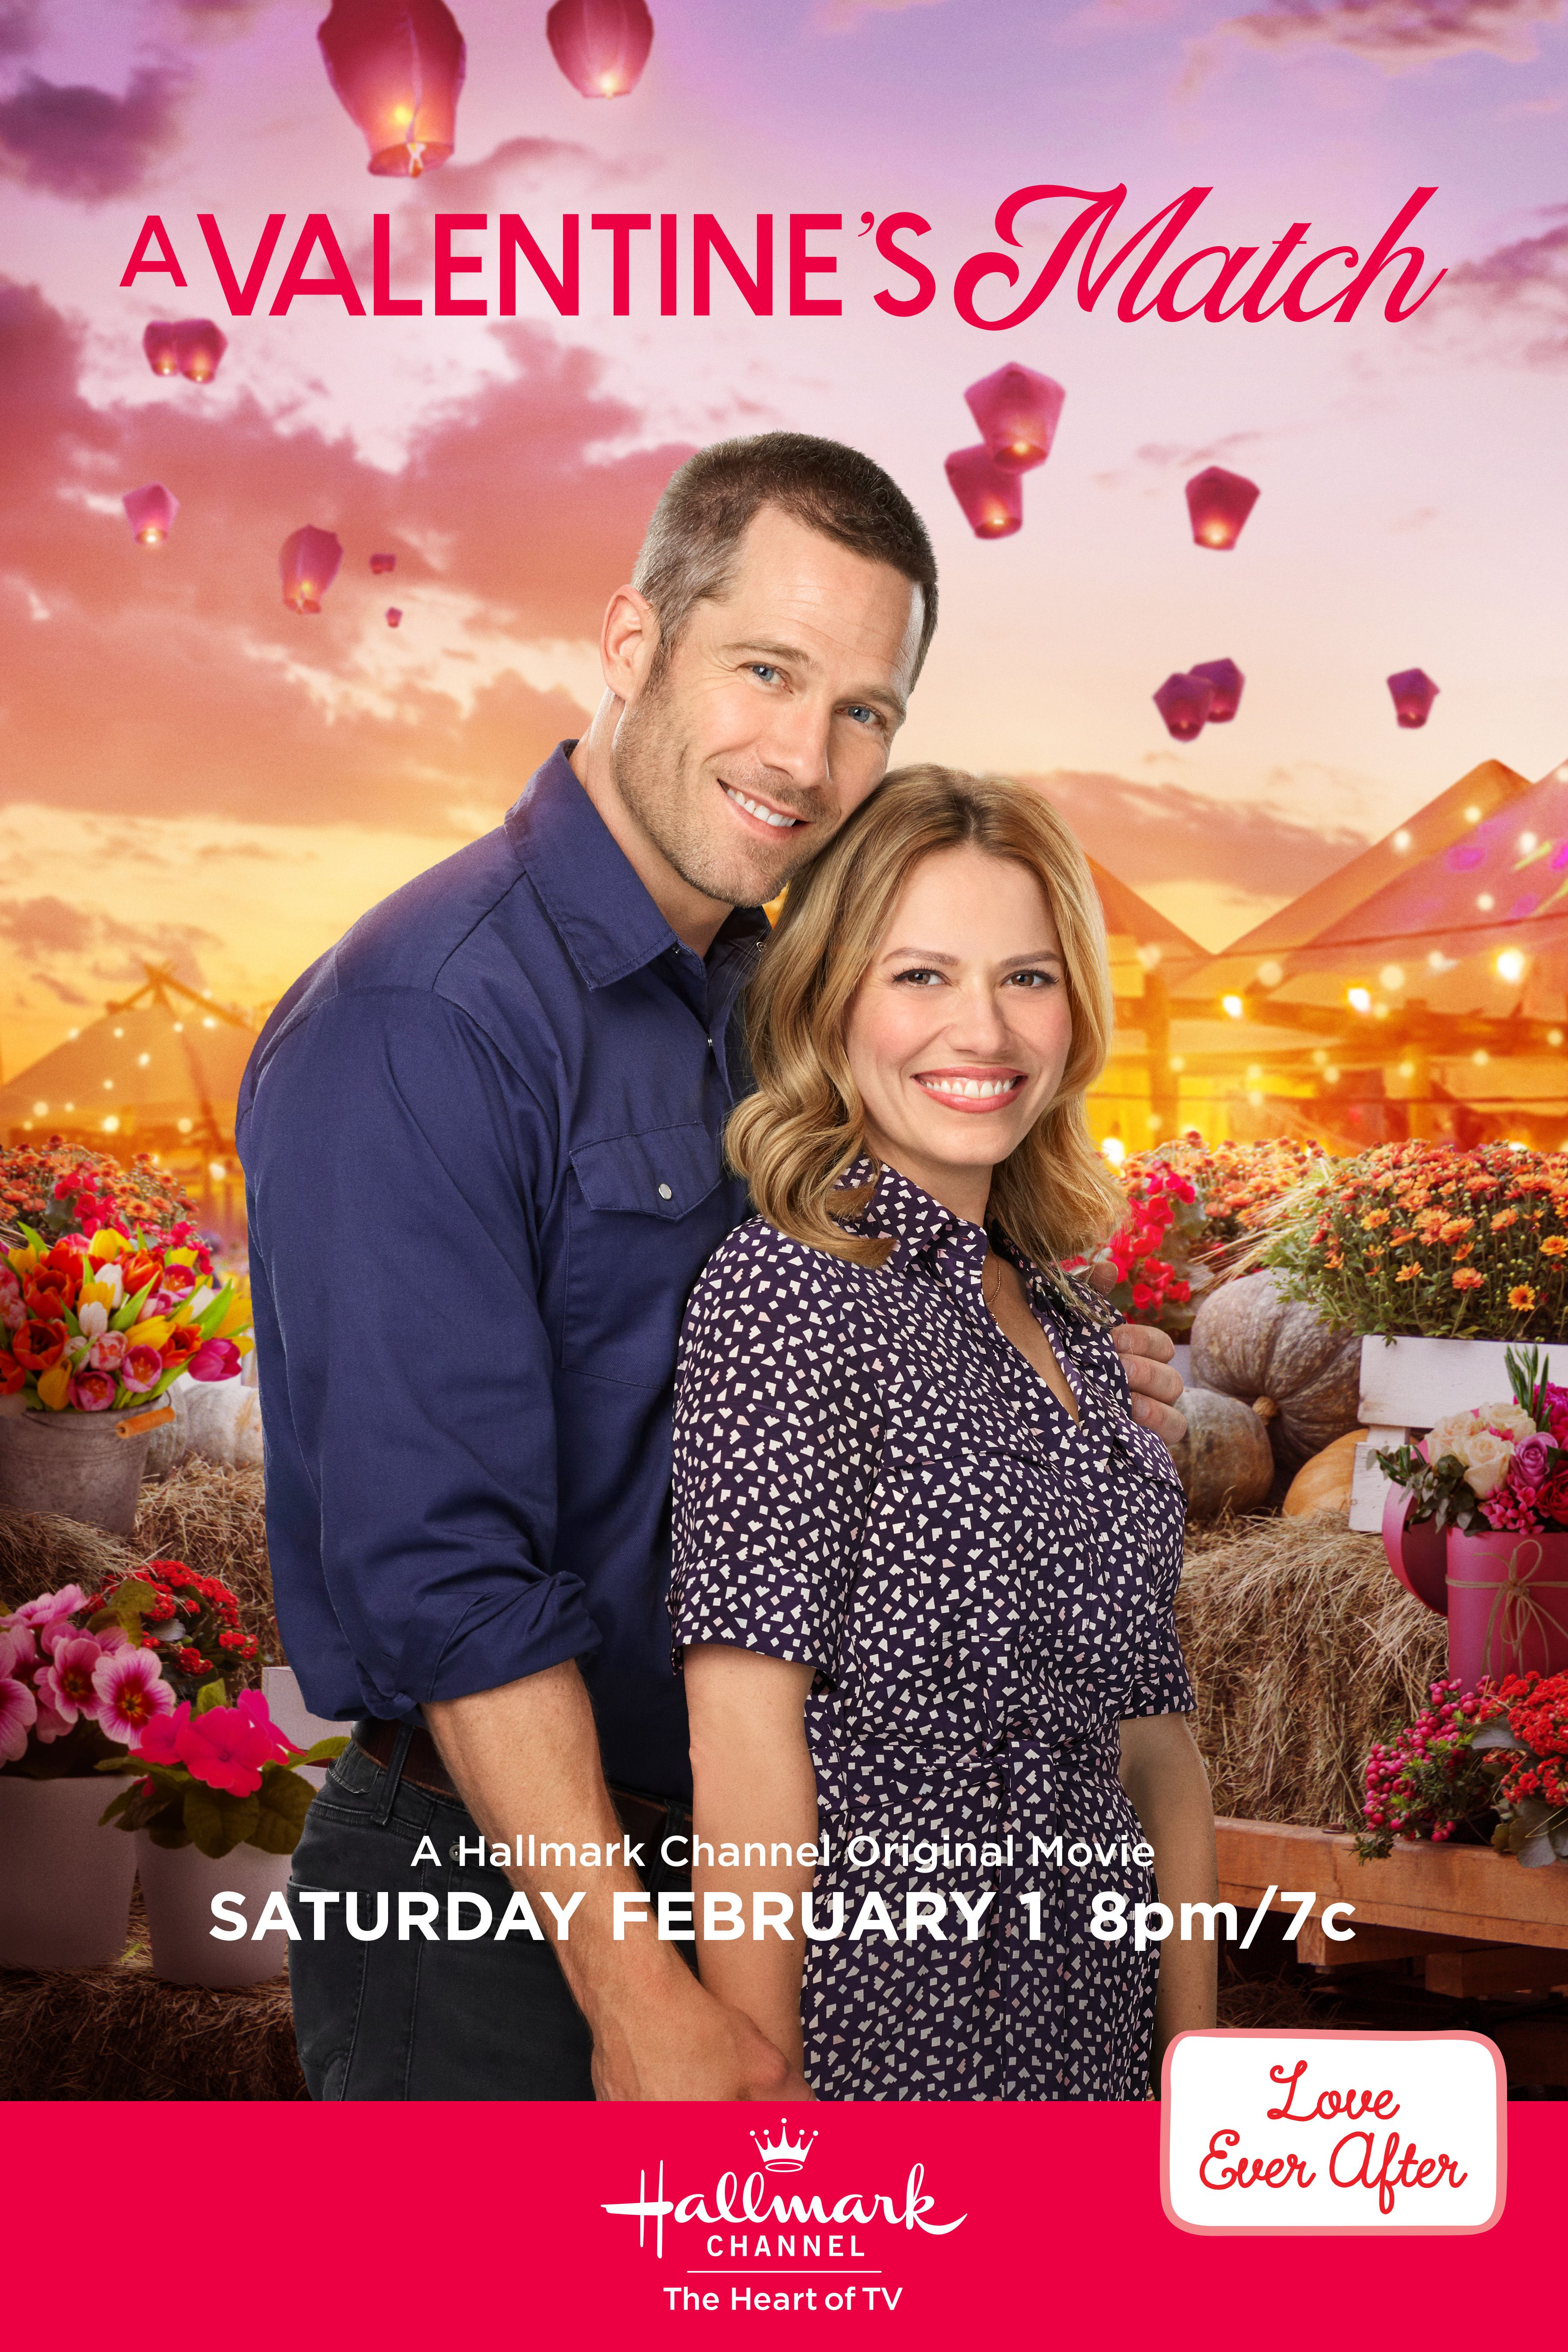 """Will Natalie (Bethany Joy Lenz) rekindle her romance with ex-fiancee Andrew York (Luke Macfarlane) during the town's festival auction? Tune in to """"A Valentine's Match"""" on February 1st, 8pm/7c for an all new original romantic premiere on Hallmark Channel. #HallmarkChannel #LoveEverAfter #AValentinesMatch"""